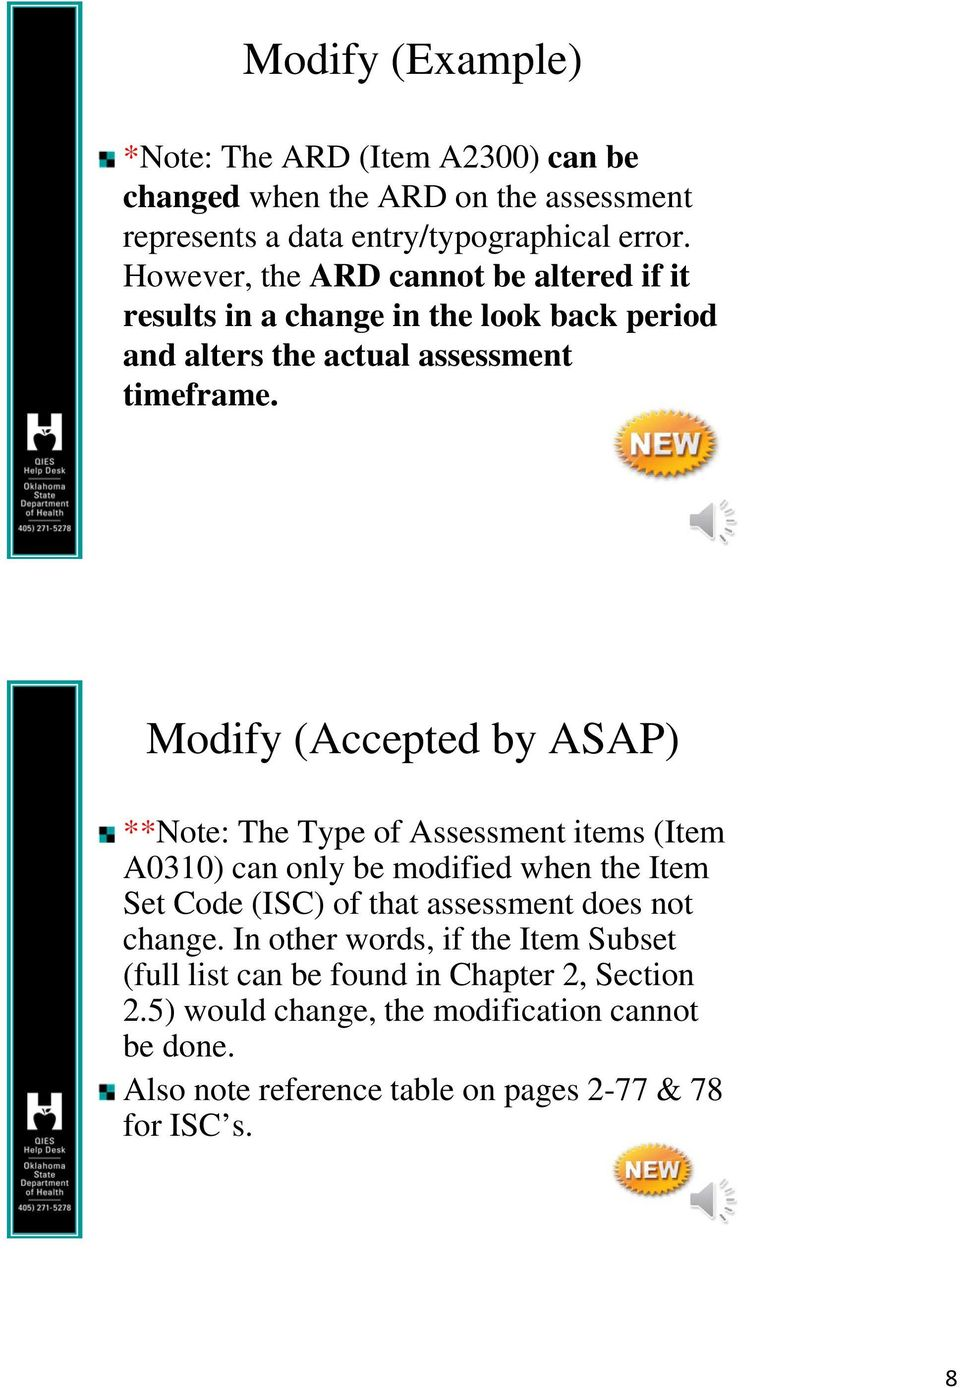 Modify (Accepted by ASAP) **Note: The Type of Assessment items (Item A0310) can only be modified when the Item Set Code (ISC) of that assessment does not